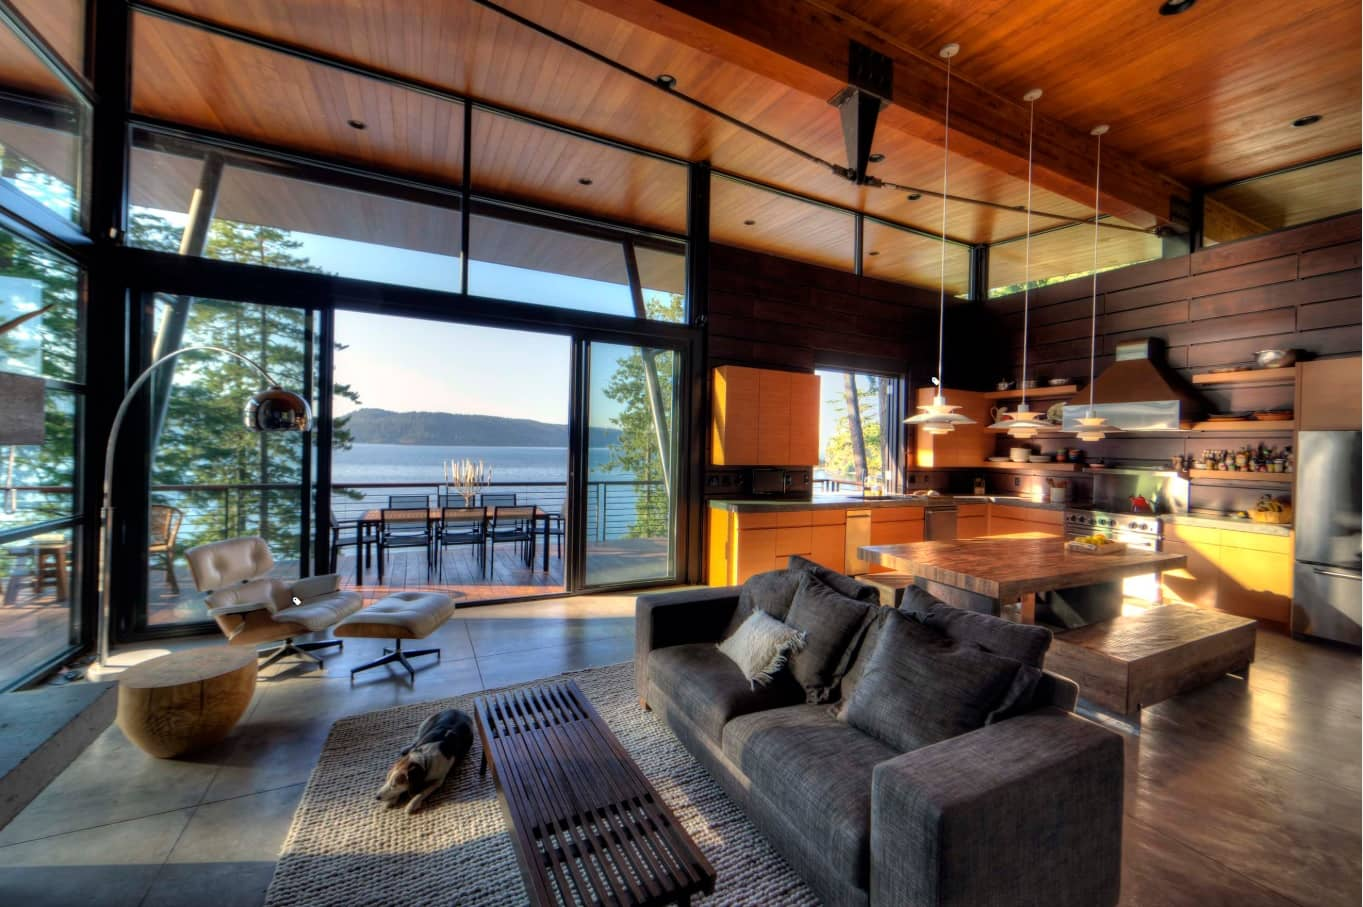 How to Turn Your Home Into a Dream Log Cabin. Modern designed cottage with open space in wood and black color